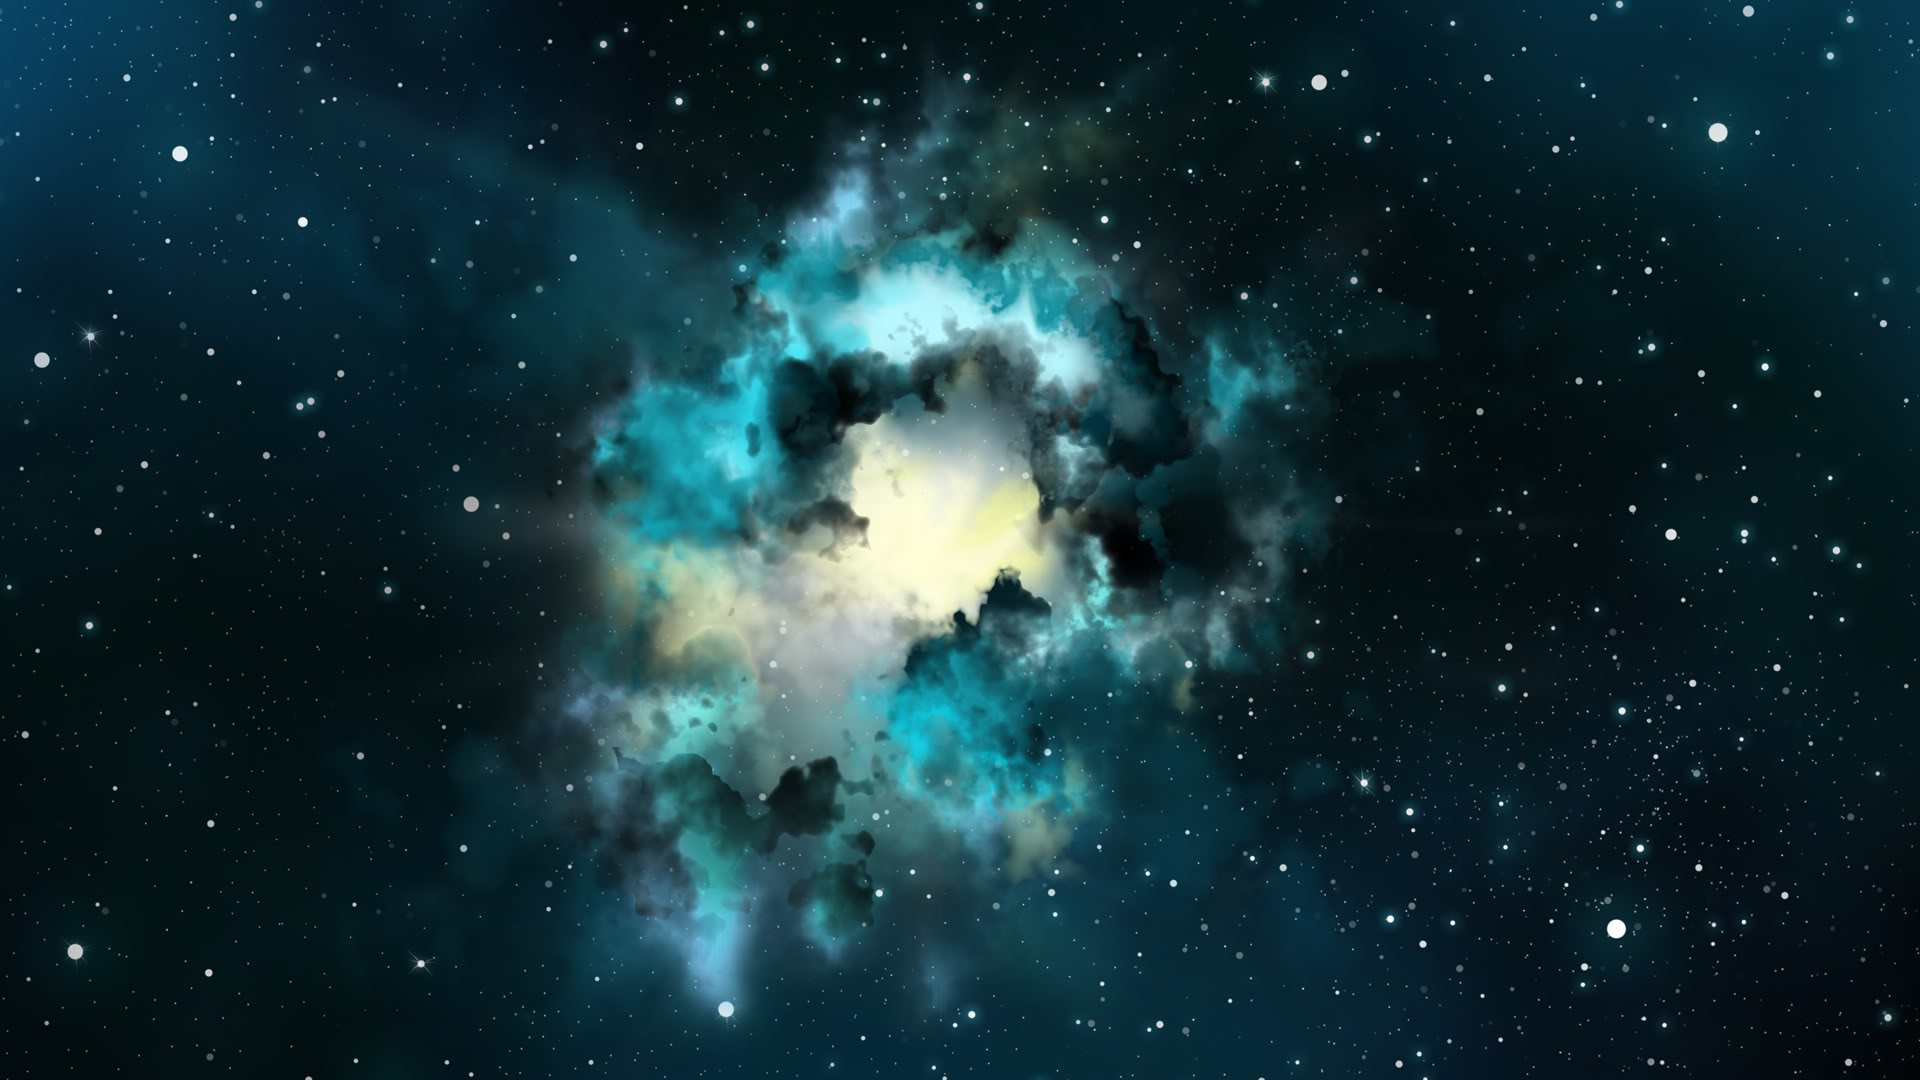 Bright Spot in Space Wallpapers